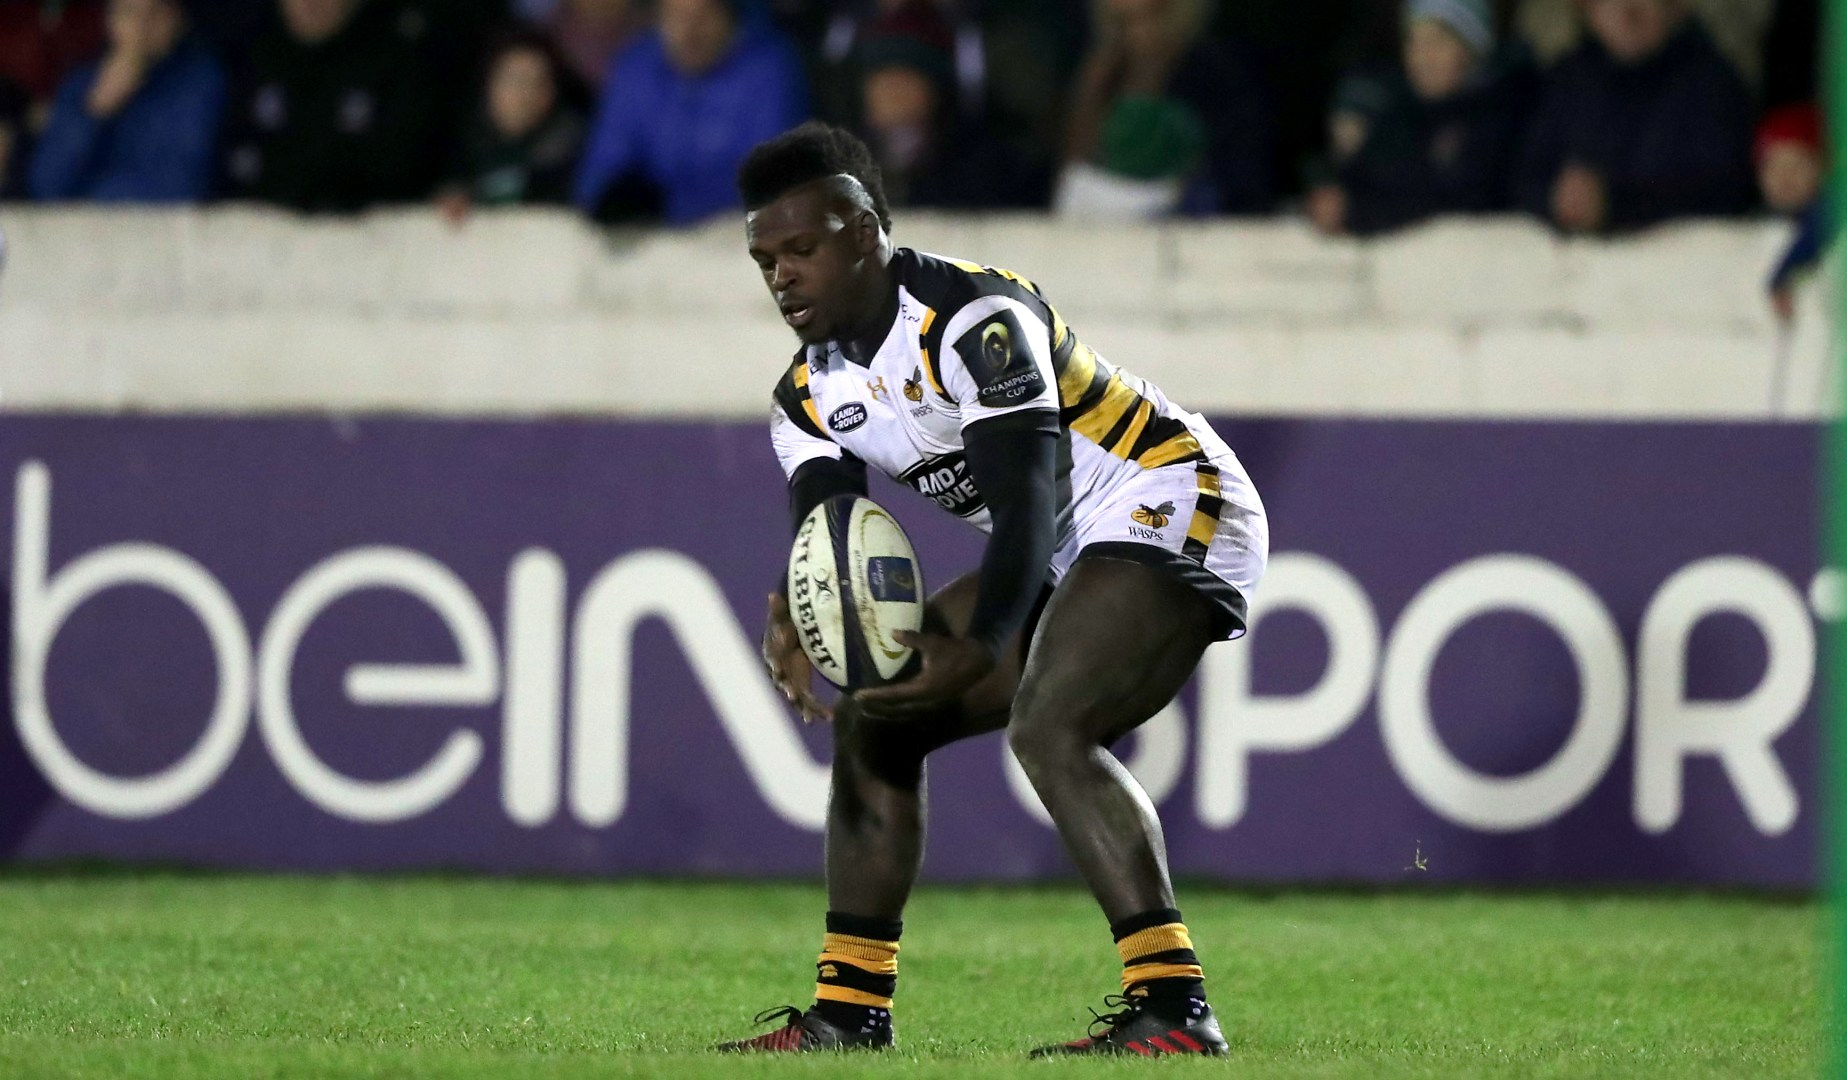 LionsWatch: Bolters stake a claim out wide